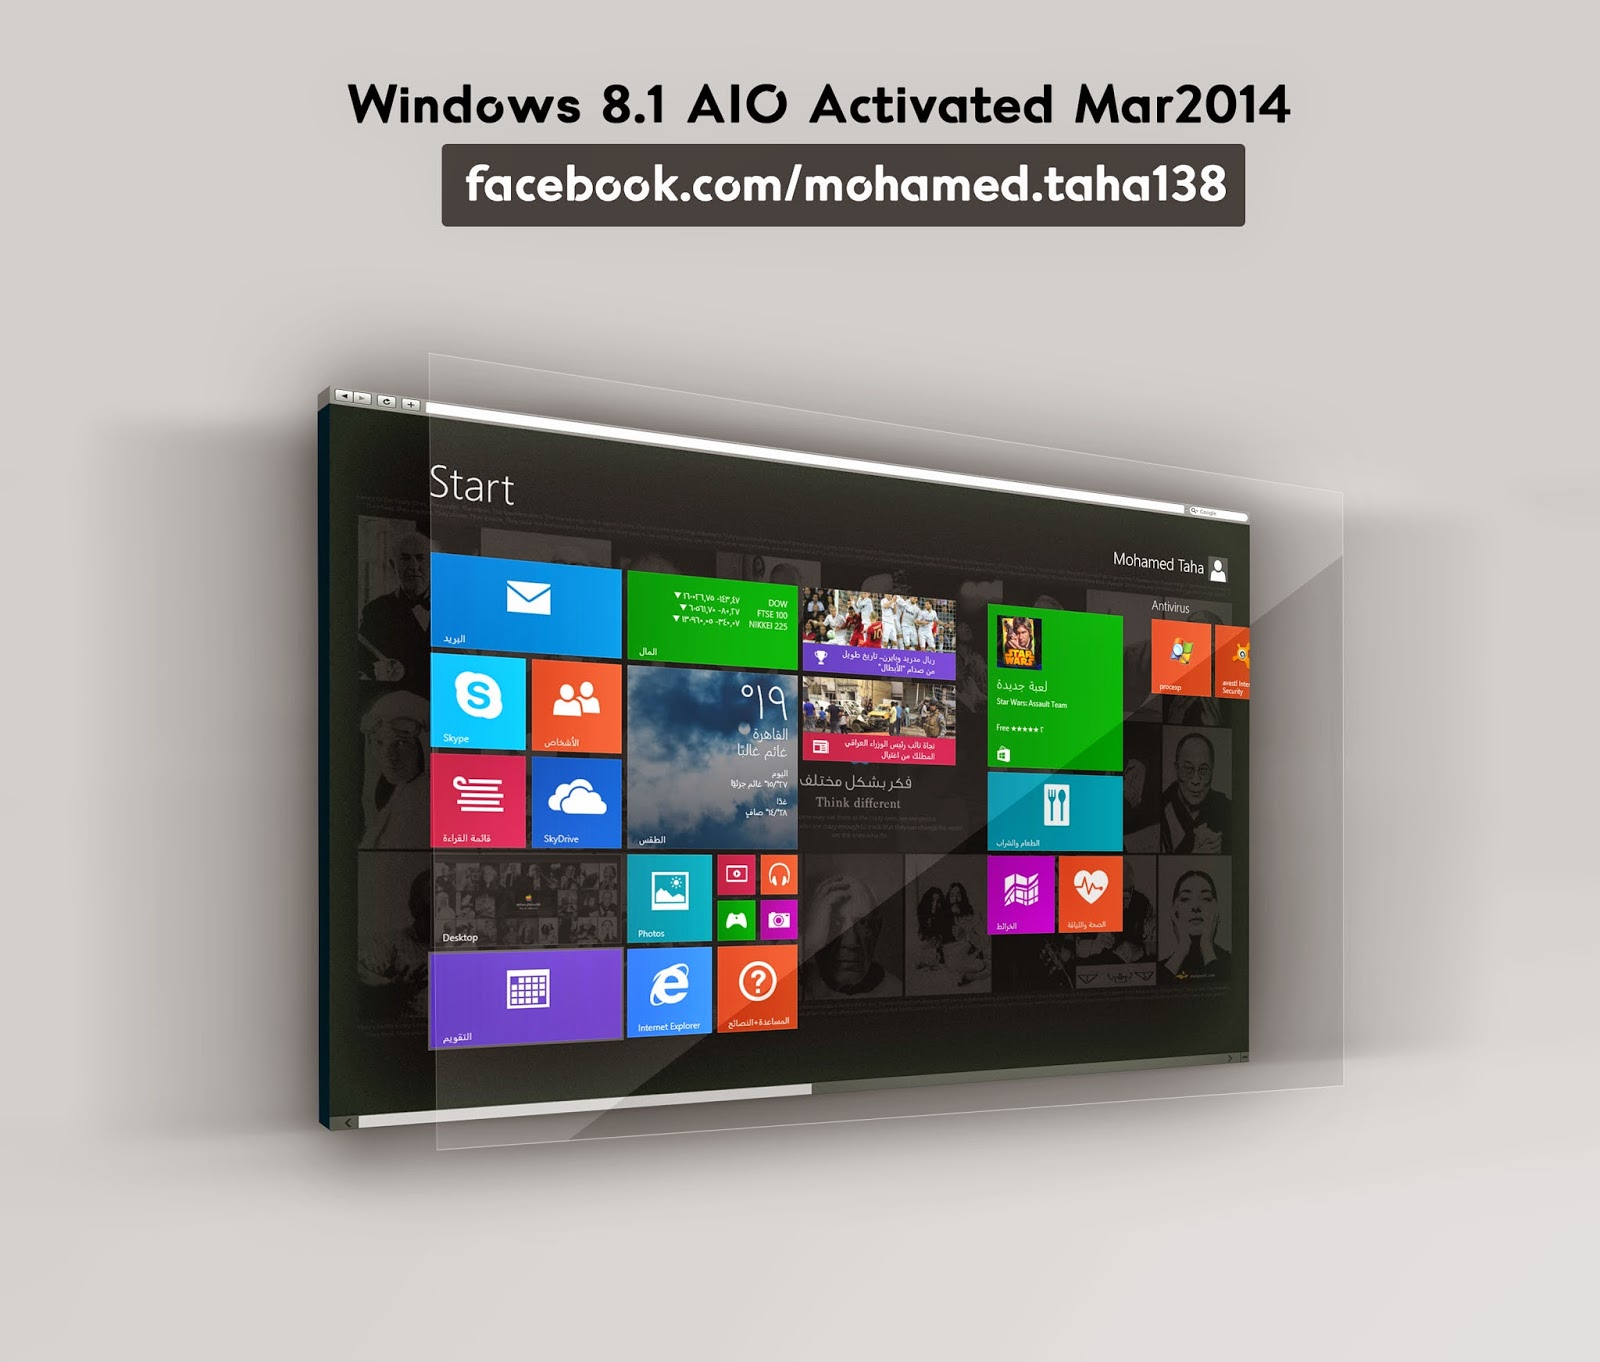 Windows 8.1 AIO